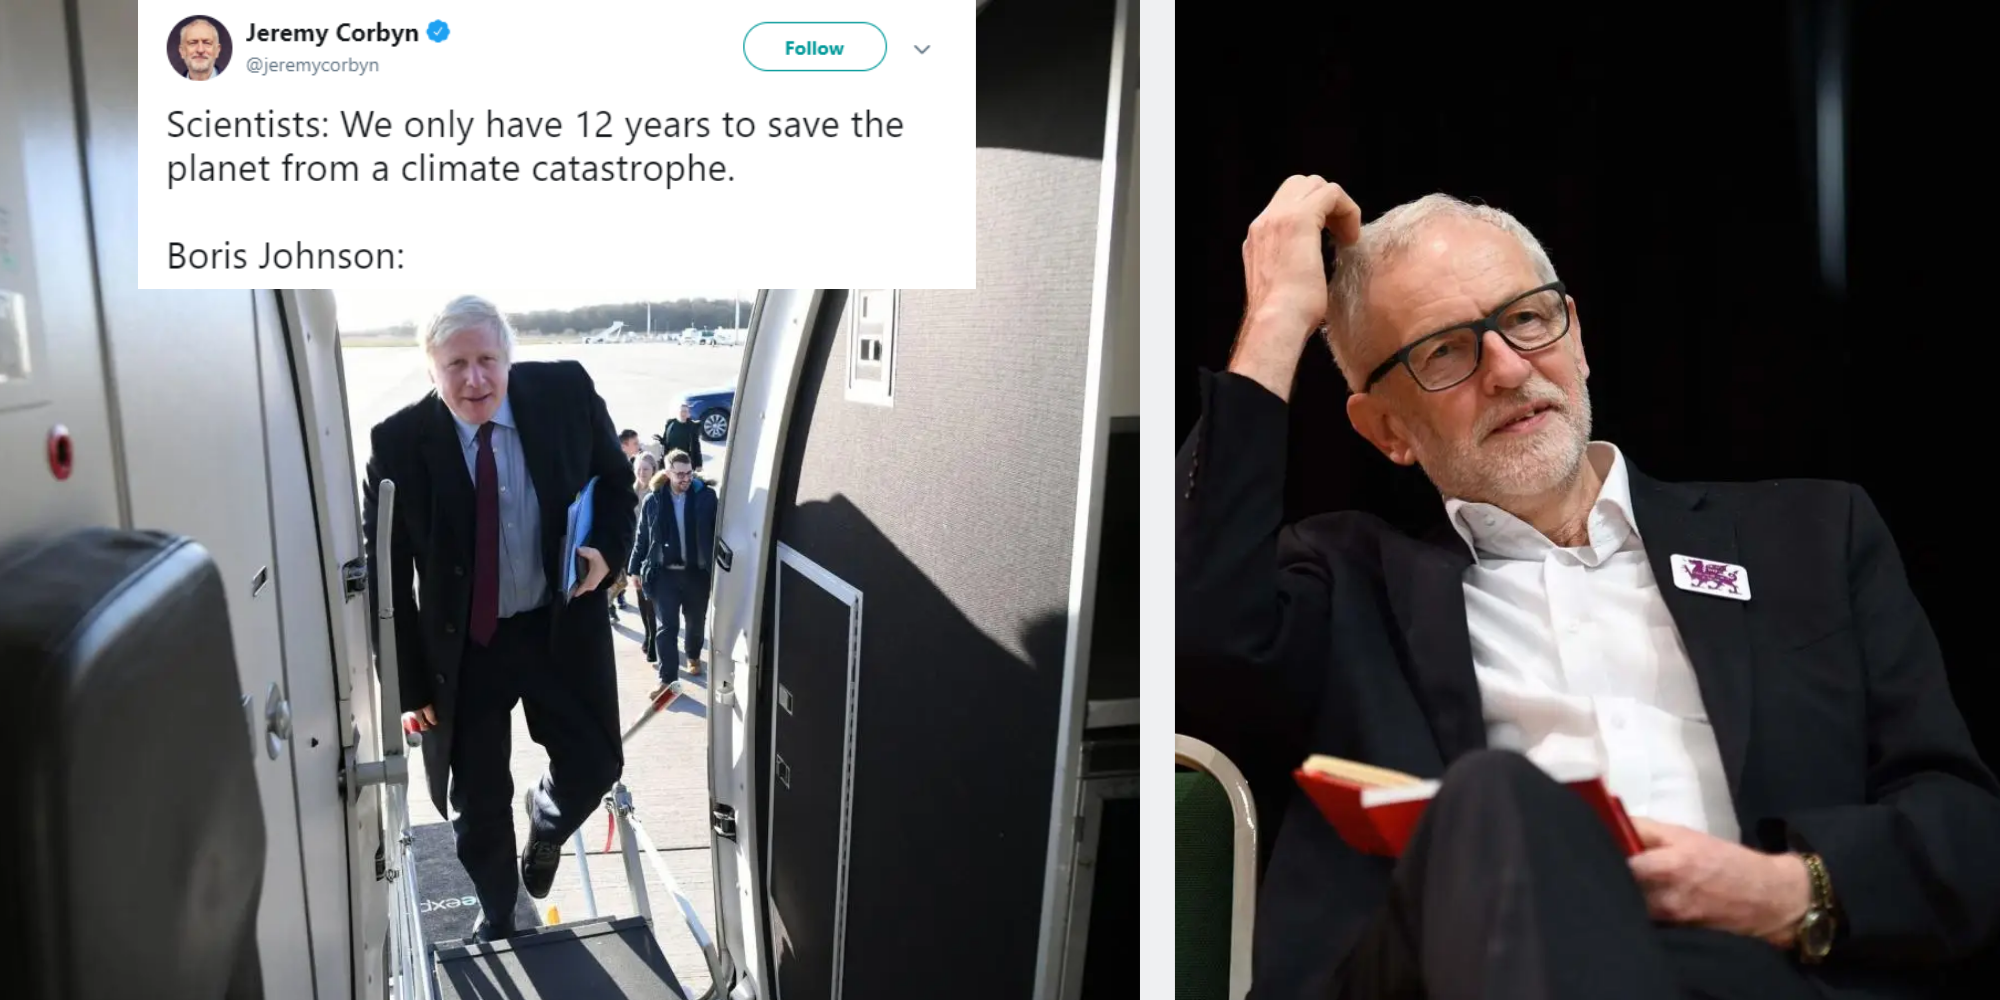 Jeremy Corbyn just used the perfect meme to attack Boris Johnson's 25 minute flight in private jet